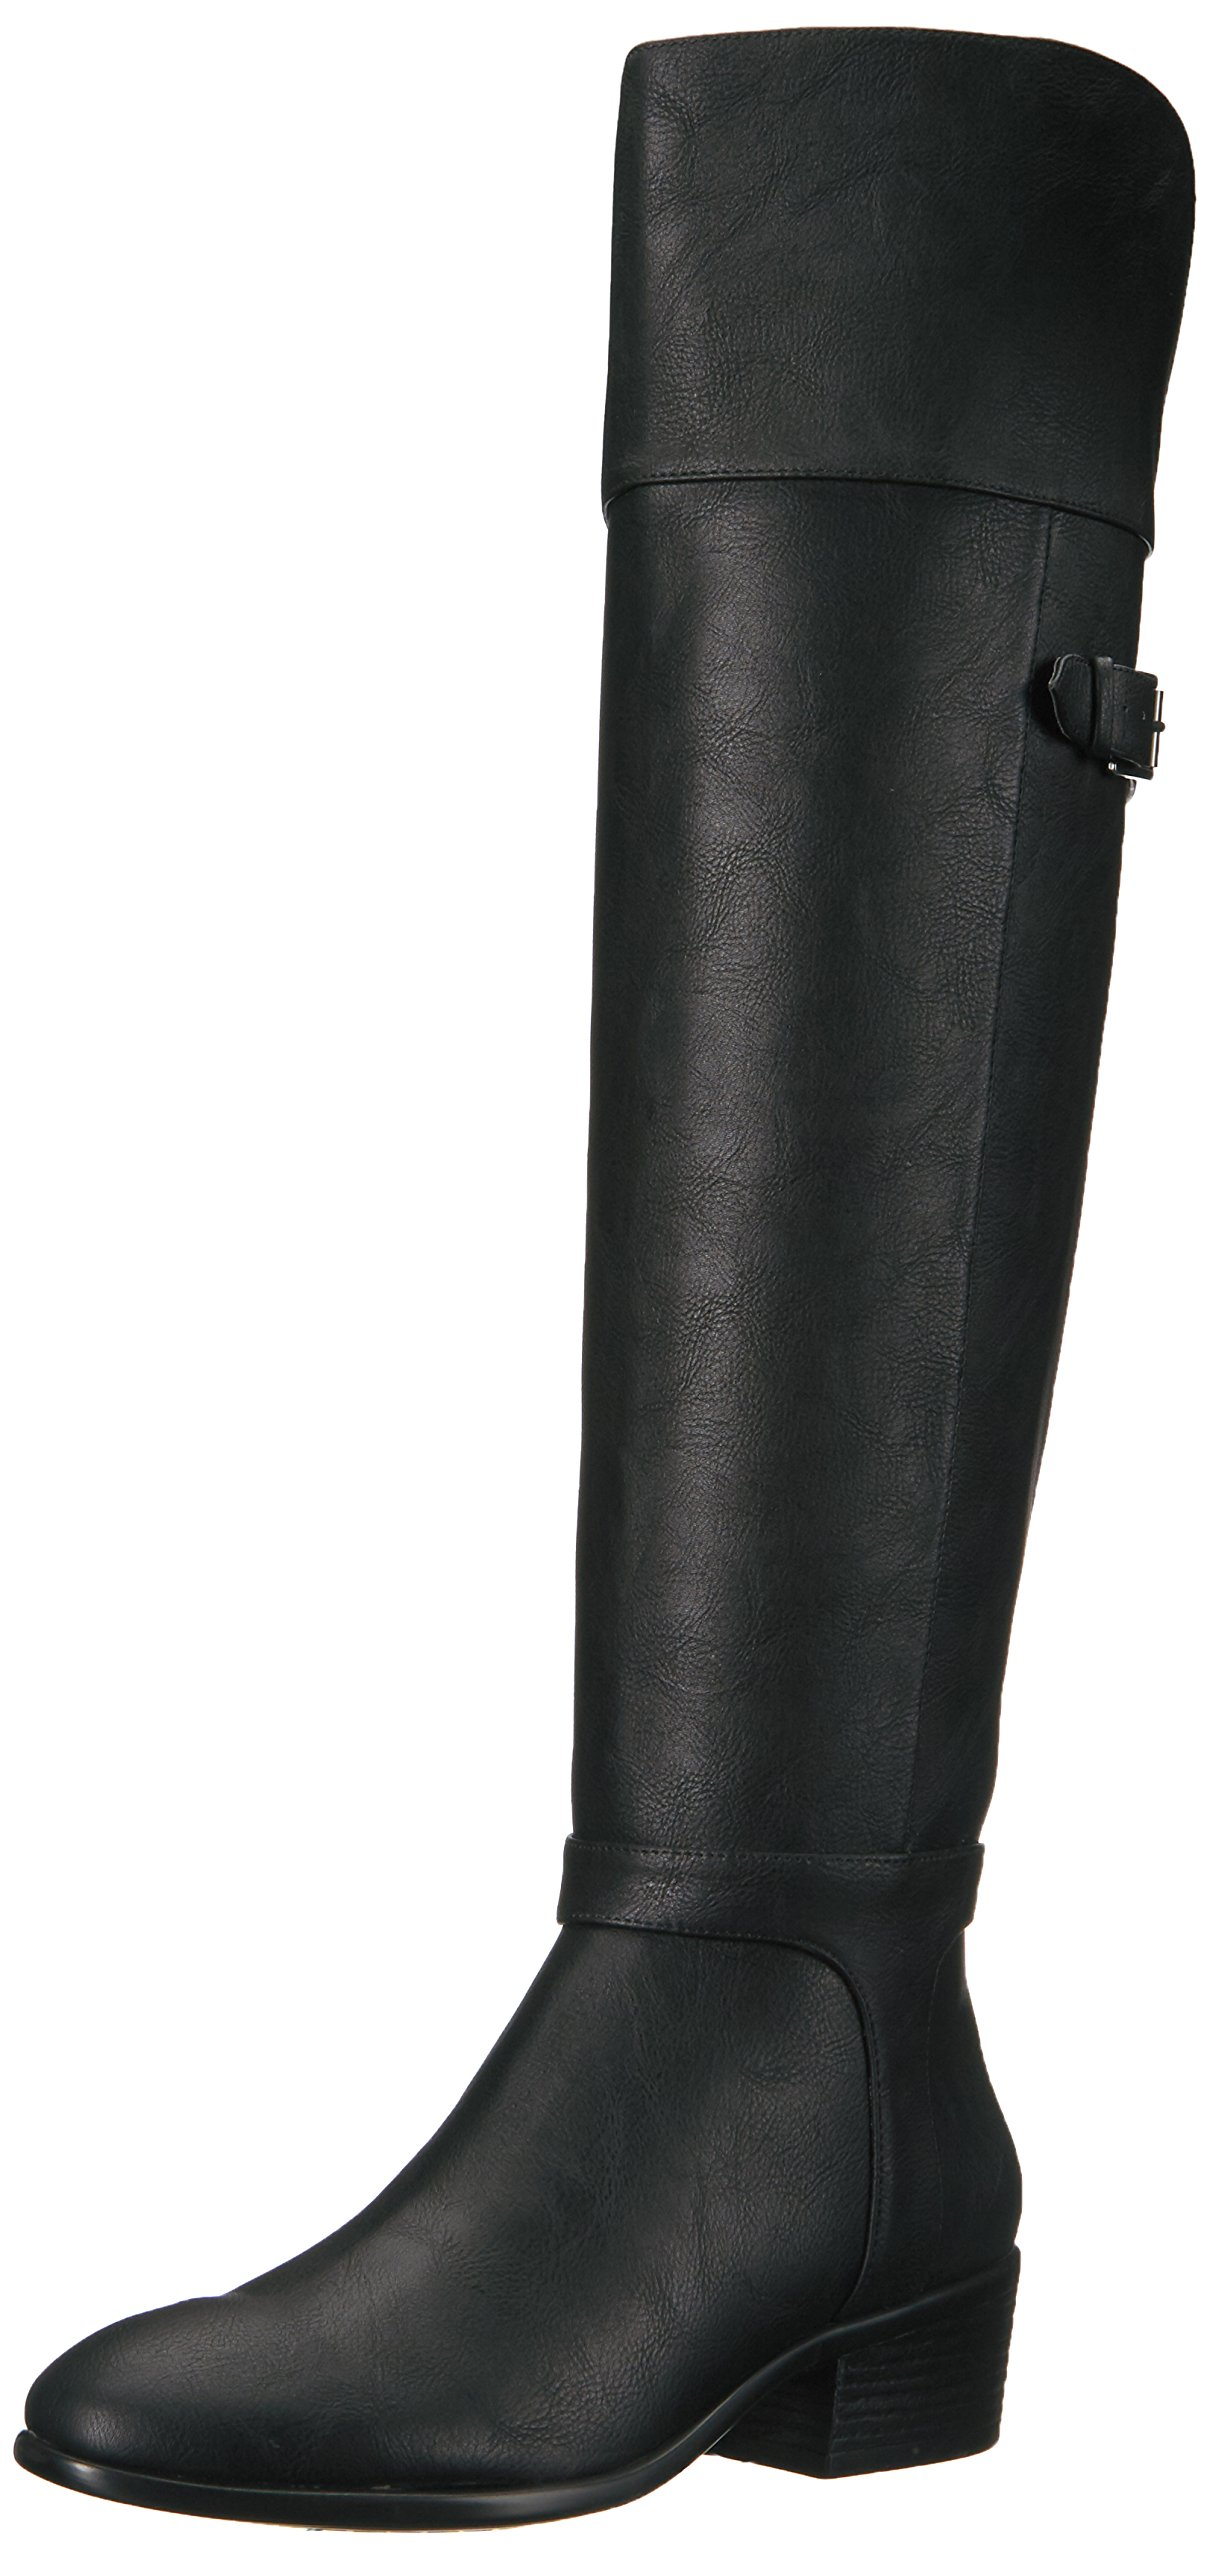 A2 by Aerosoles Women's Mysterious Over The Knee Boot, Black, 9.5 M US